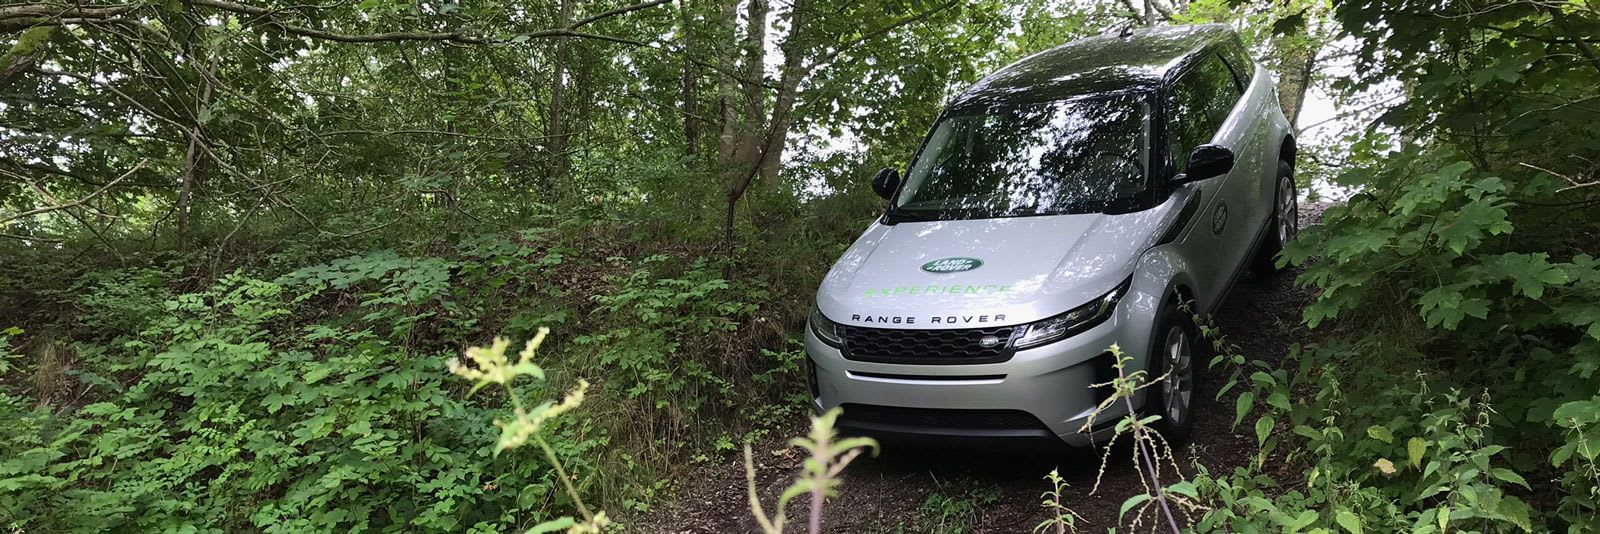 Range Rover driving in woodland